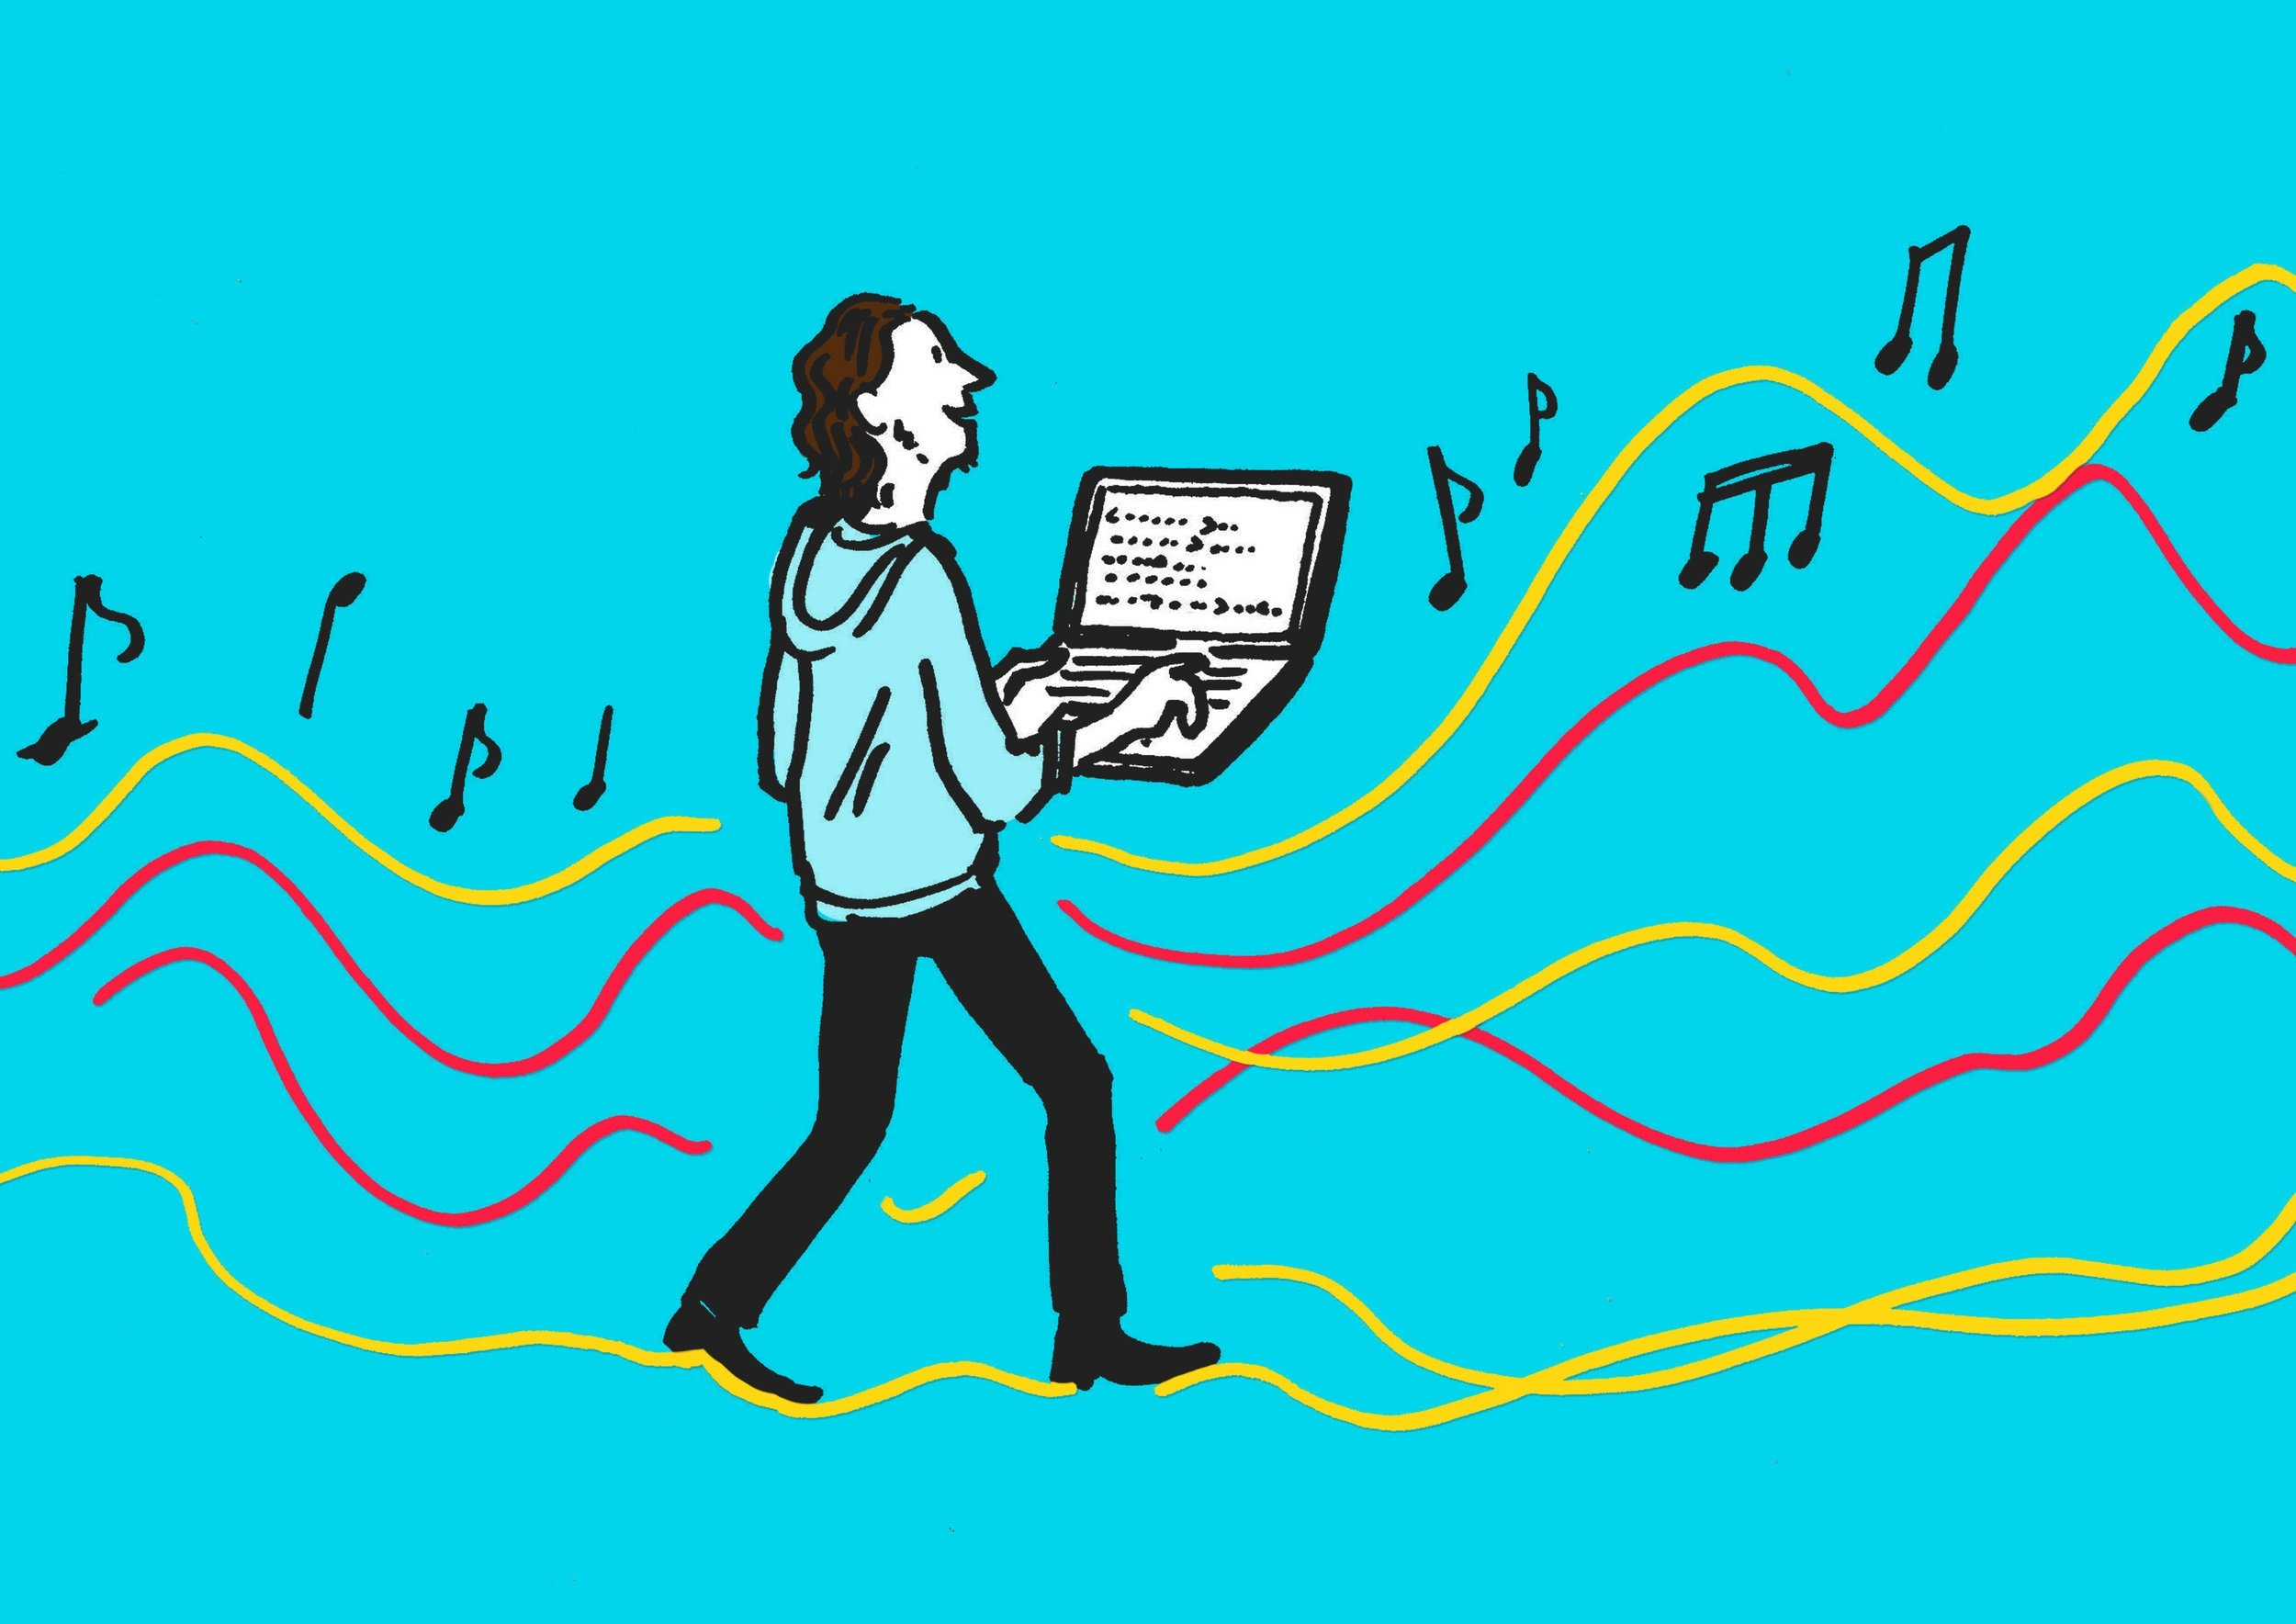 A colourful illustration of a man walking on soundwaves as his laptop plays musical notes